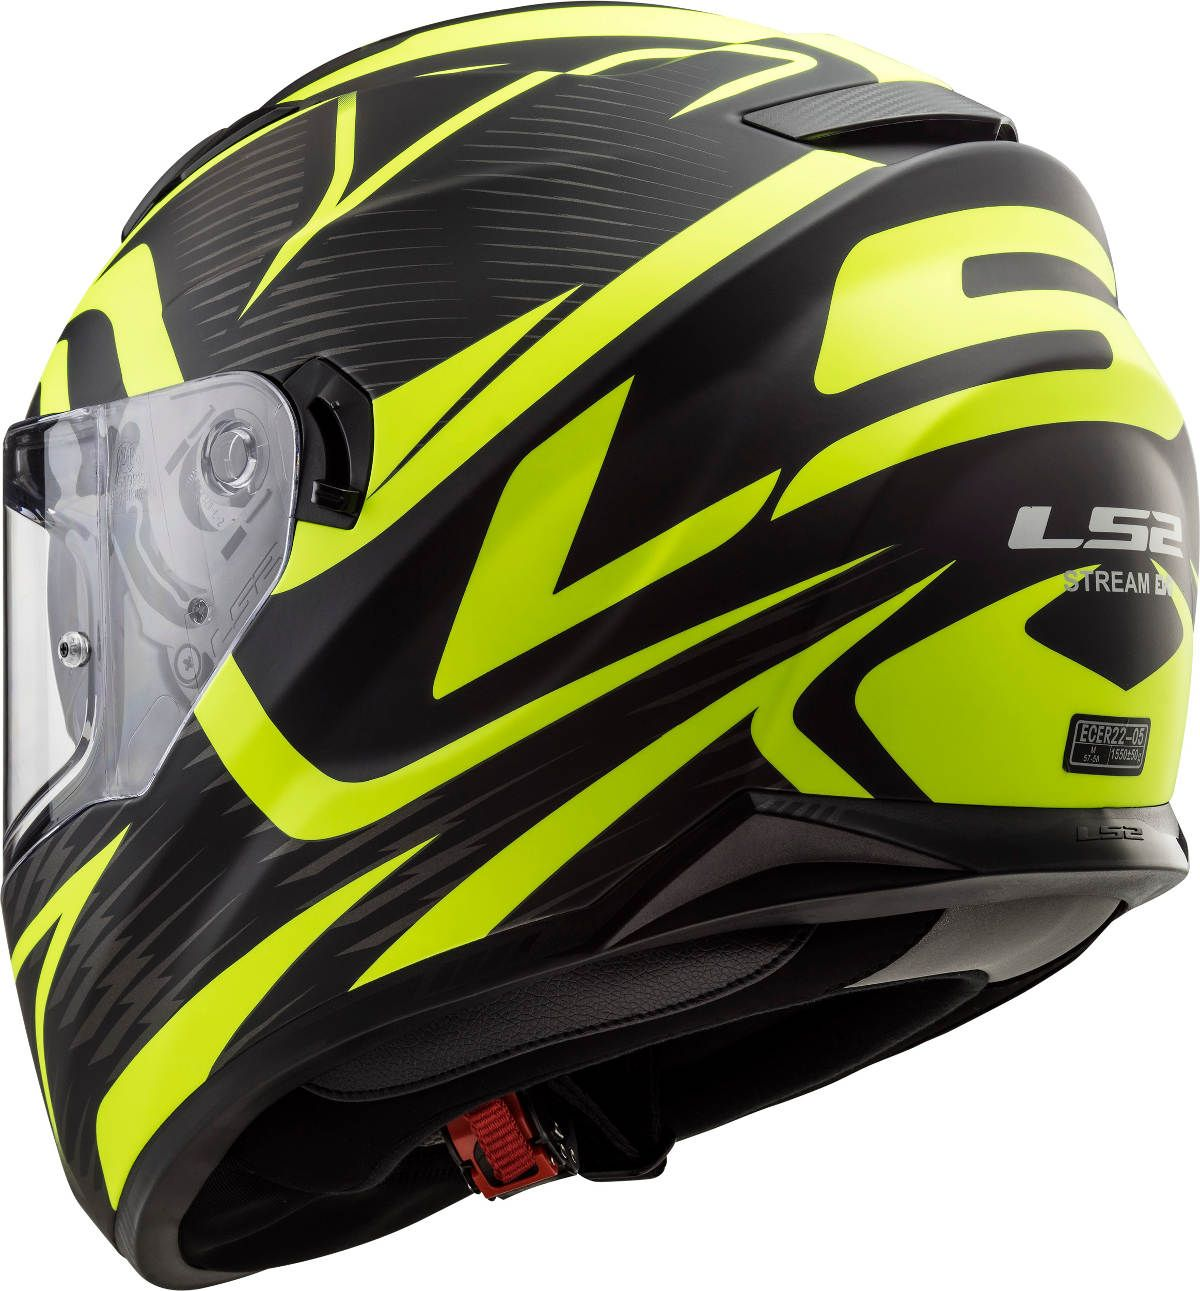 New Ls2 Stream Evo Helmet Targets Fatigue And Noise Motorcycle